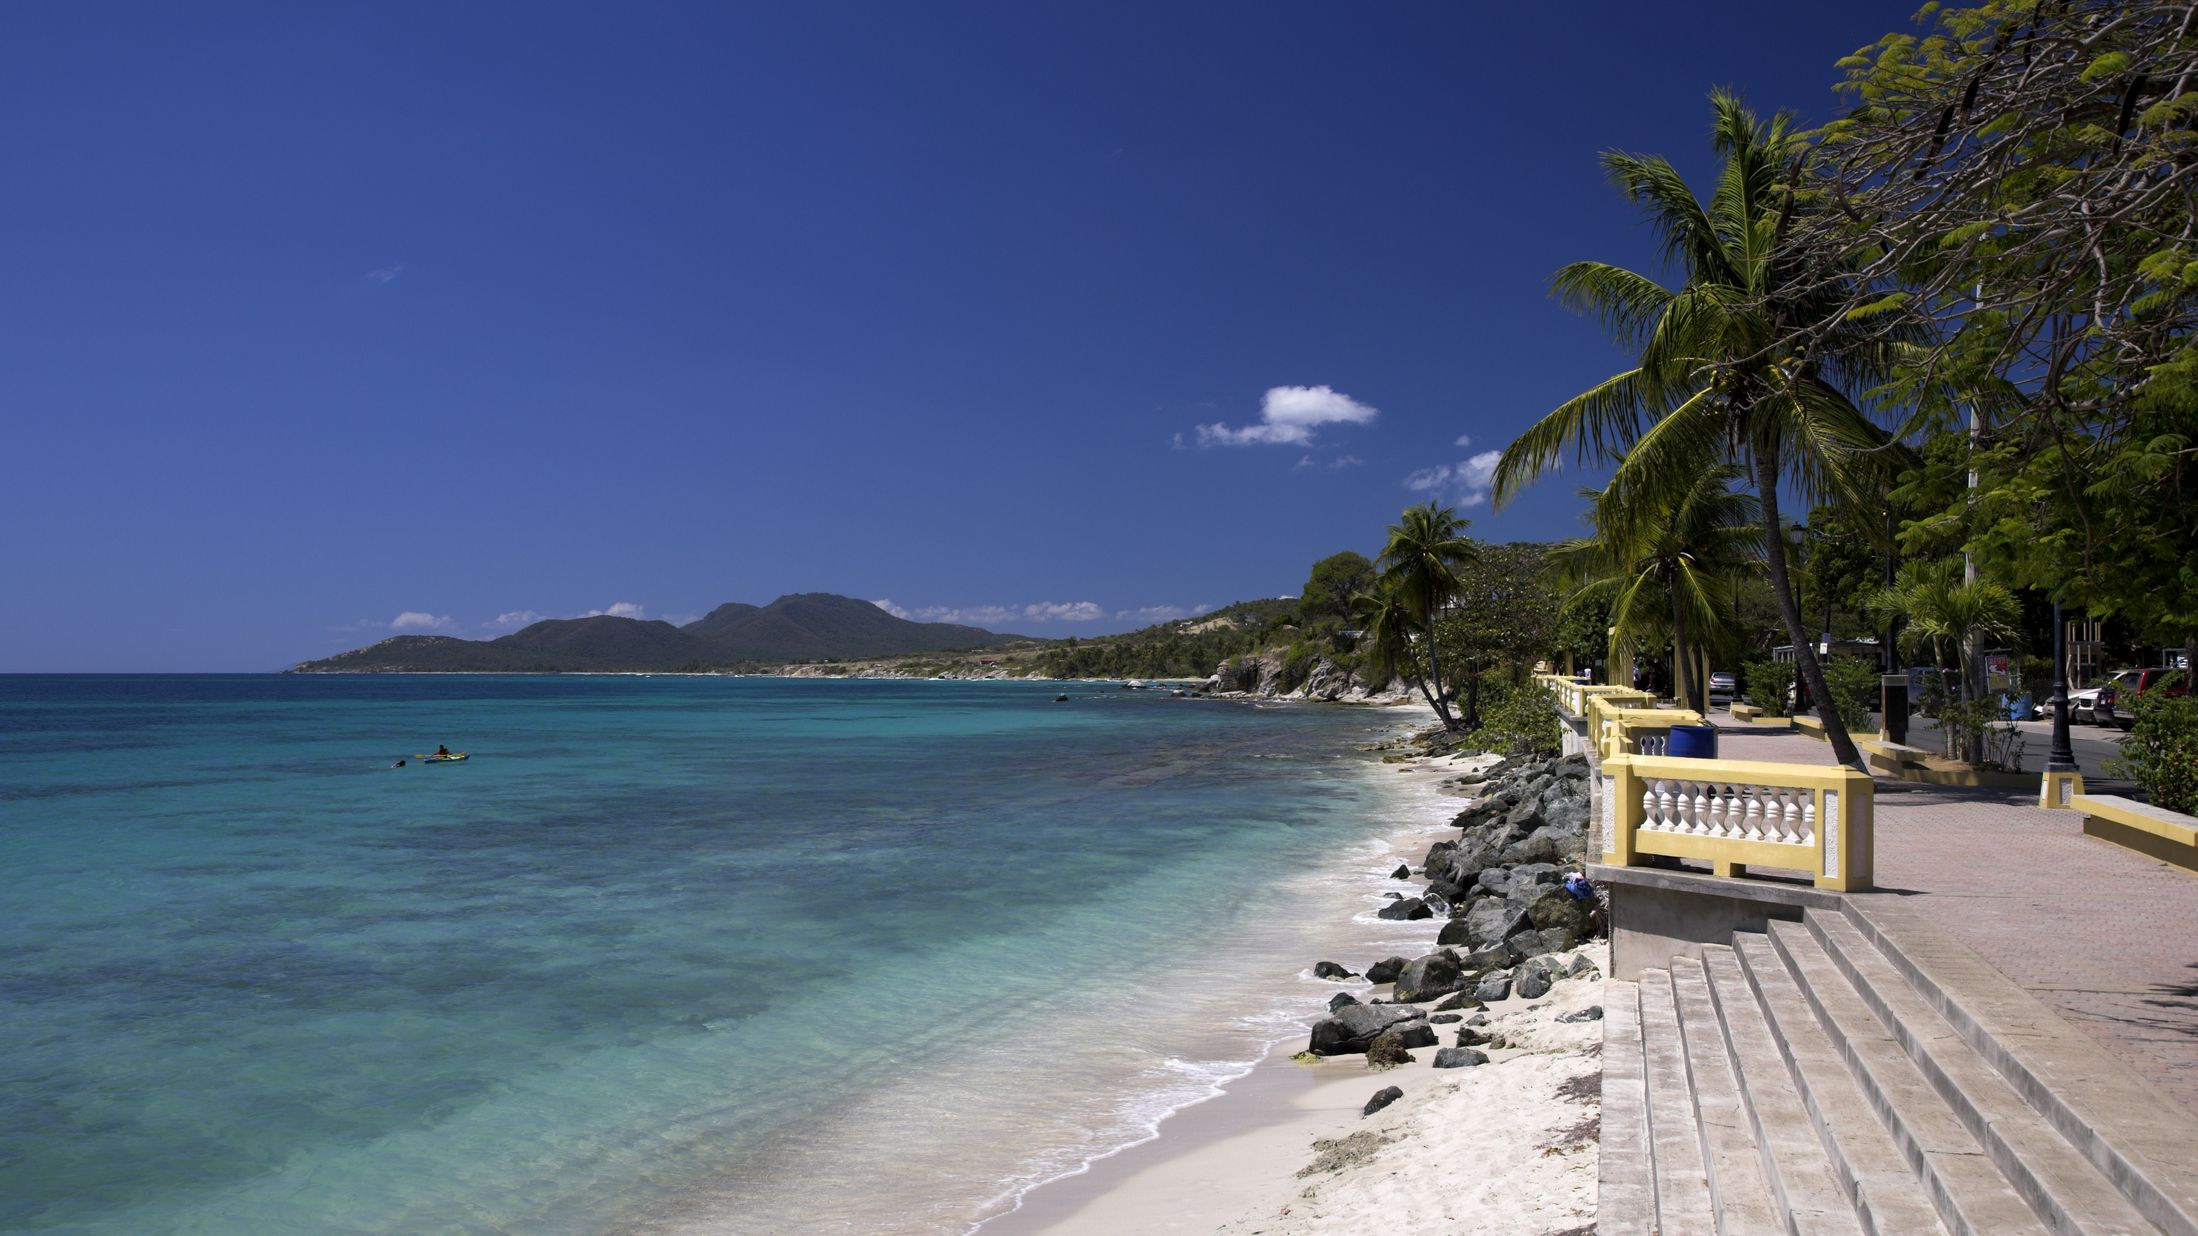 5 Best Tourist Attractions On Vieques Island Karabia, Puerto Rico